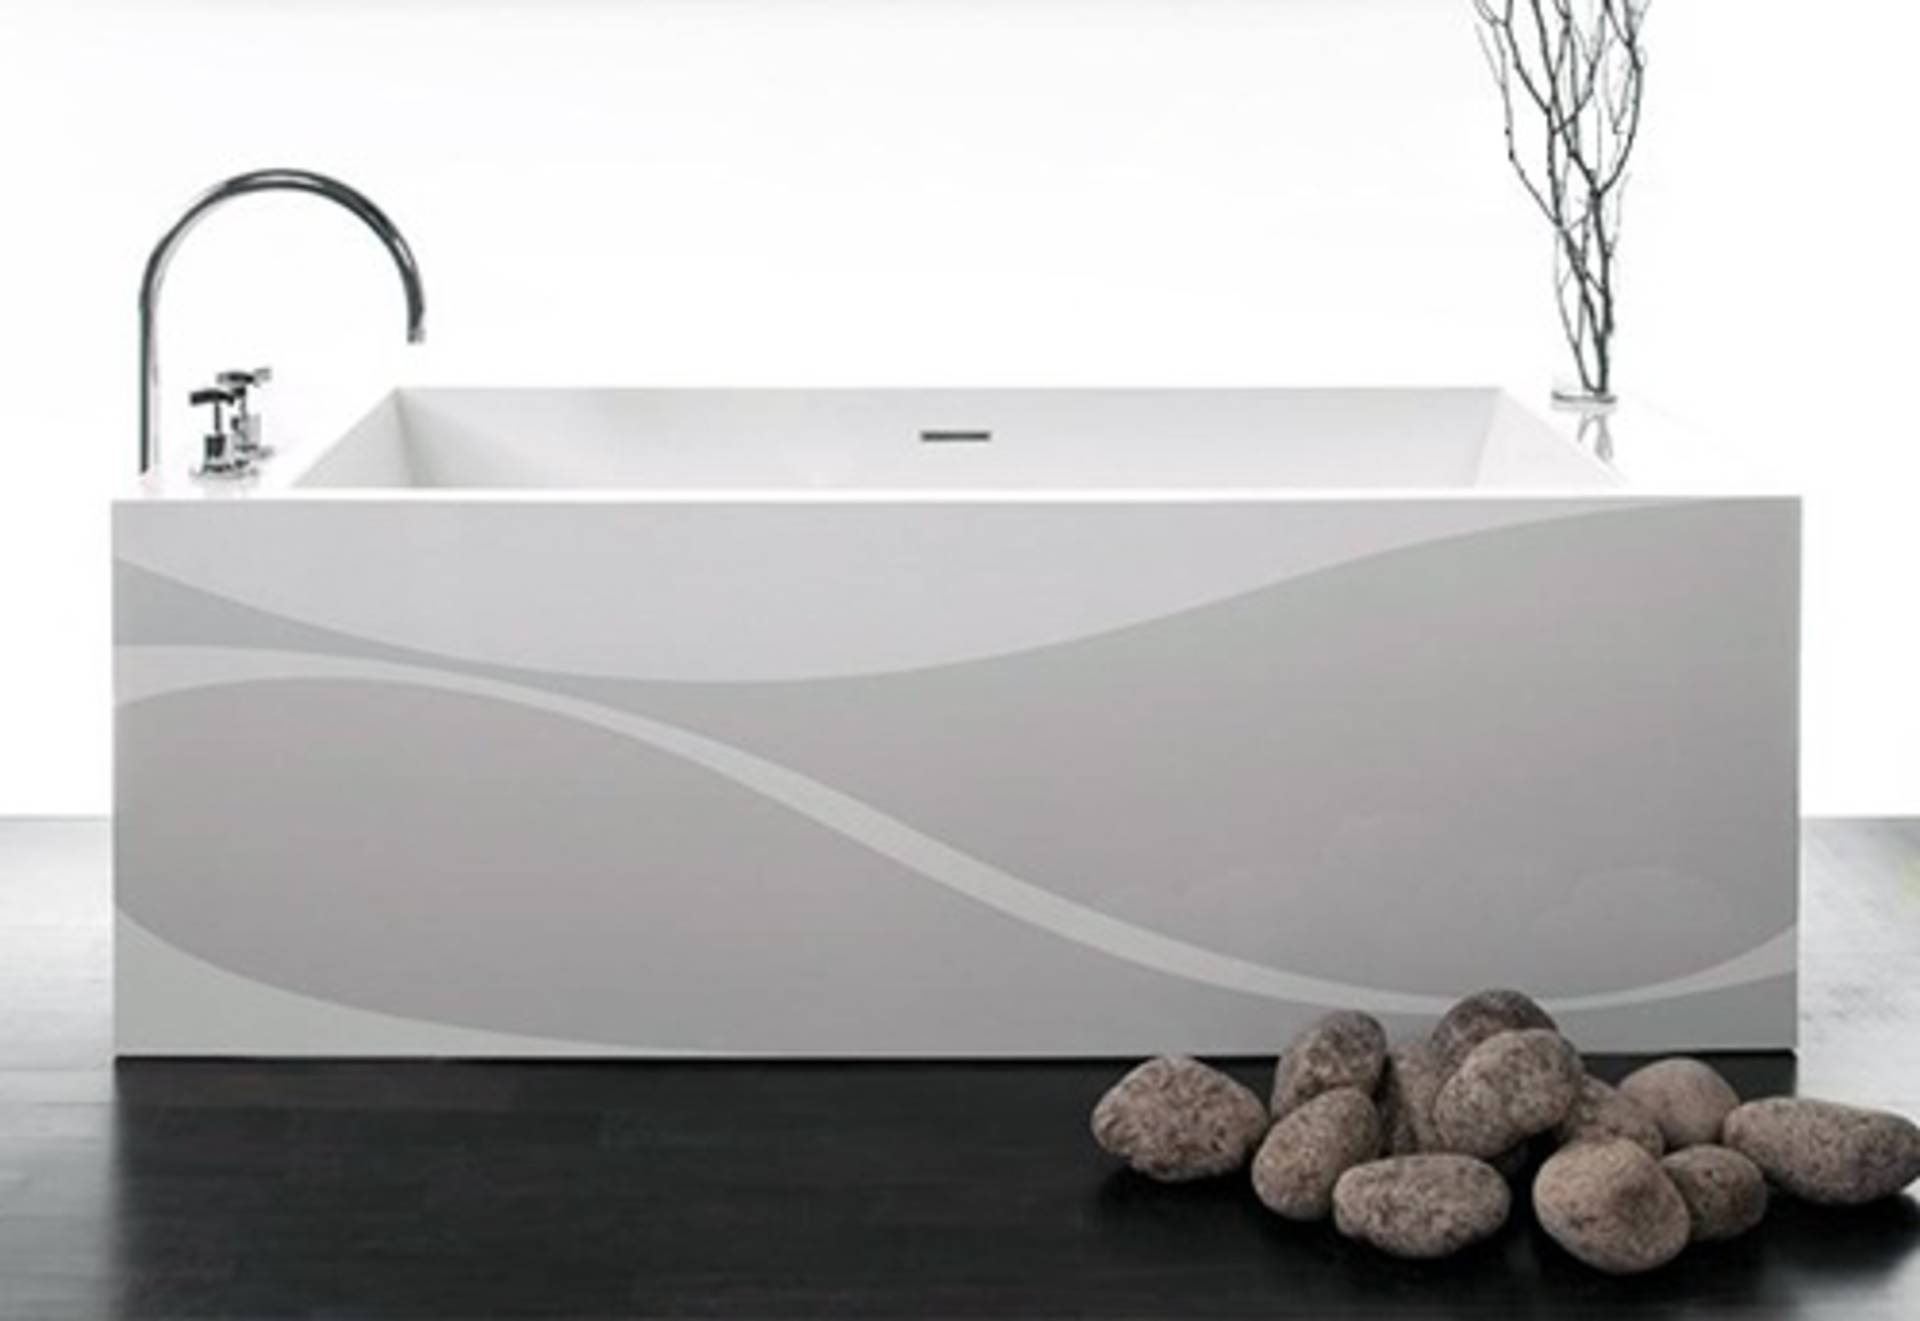 Luxury ImageIn Motif Bathtub Collection By WetStyle Home Reviews - Wet style bathroom